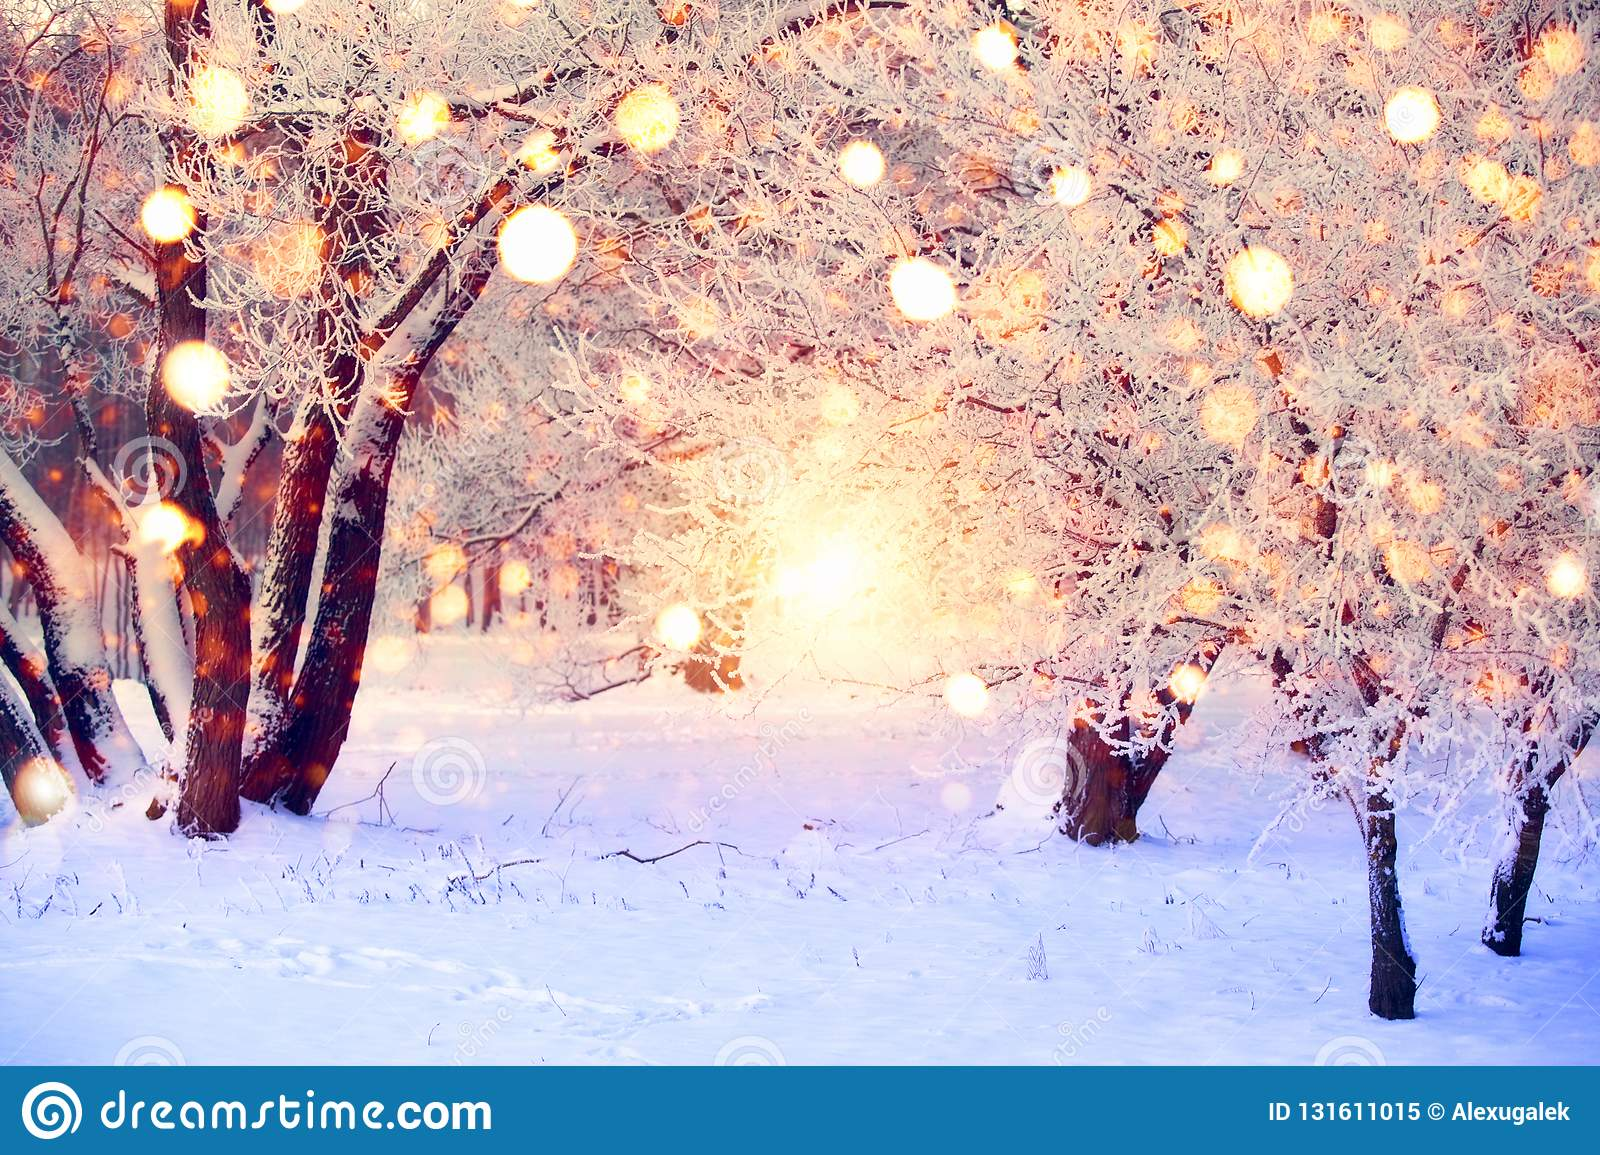 Winter Forest With Colorful Snowflakes. Snow Covered Trees